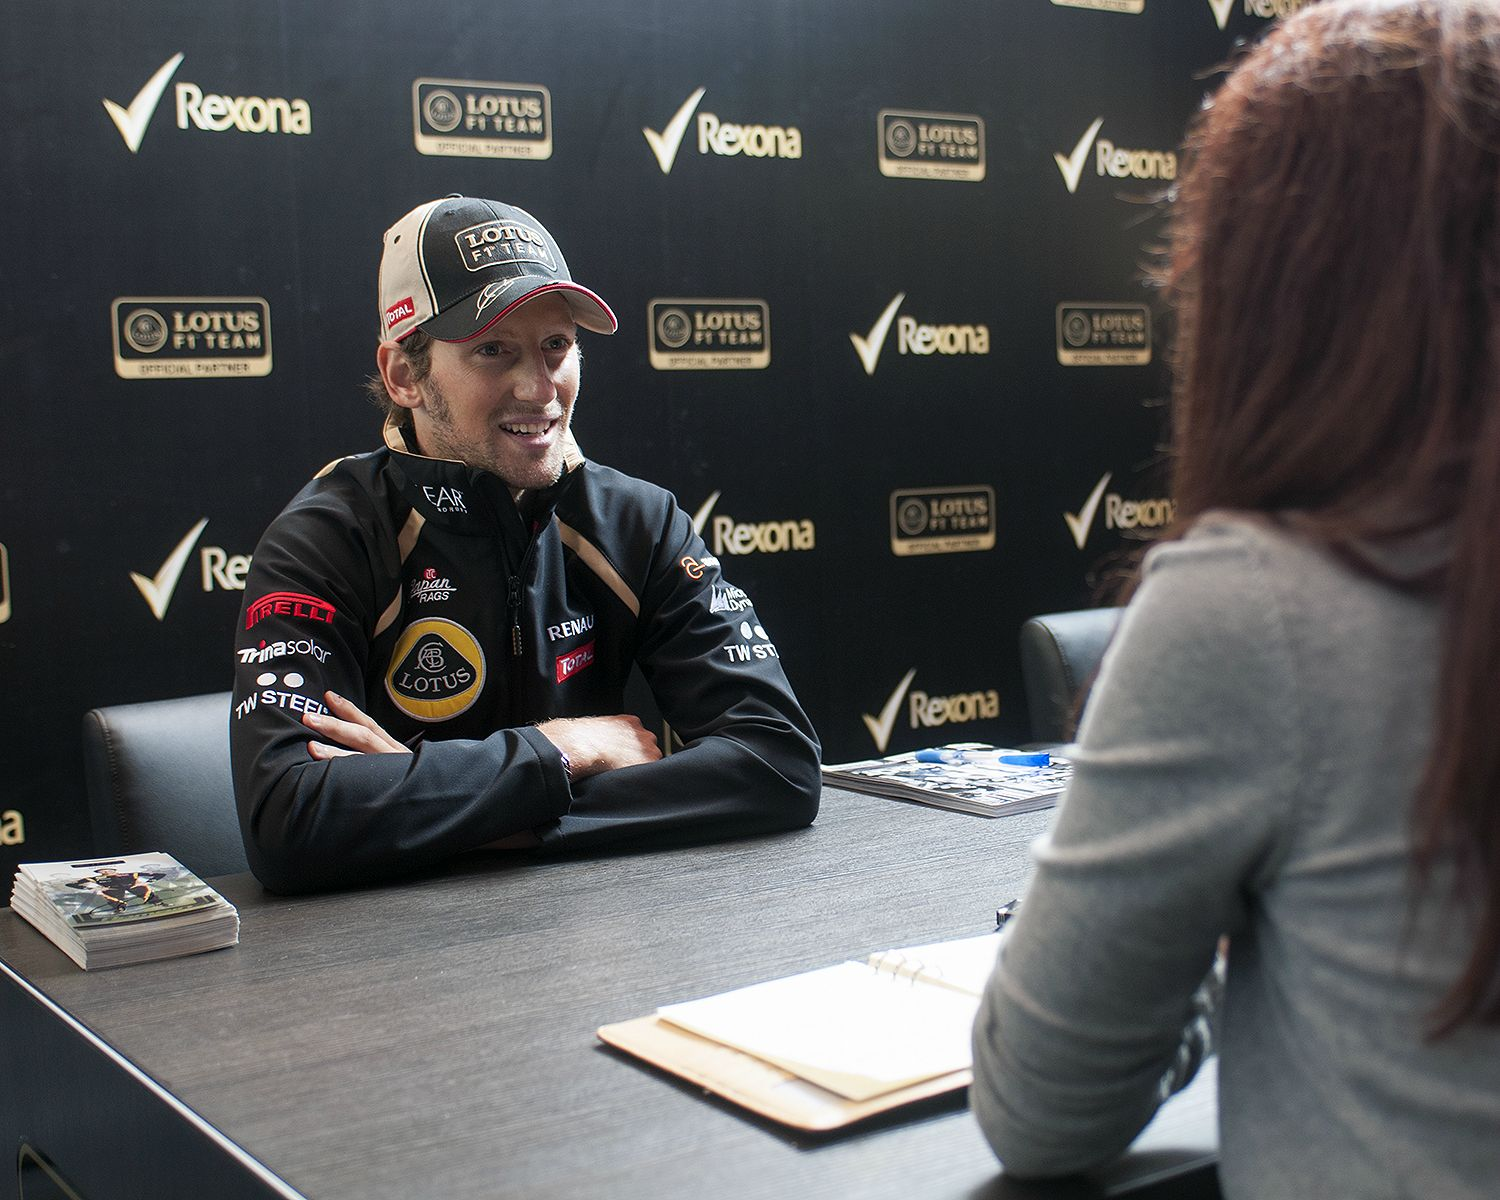 Exclusive Q&A with Romain Grosjean